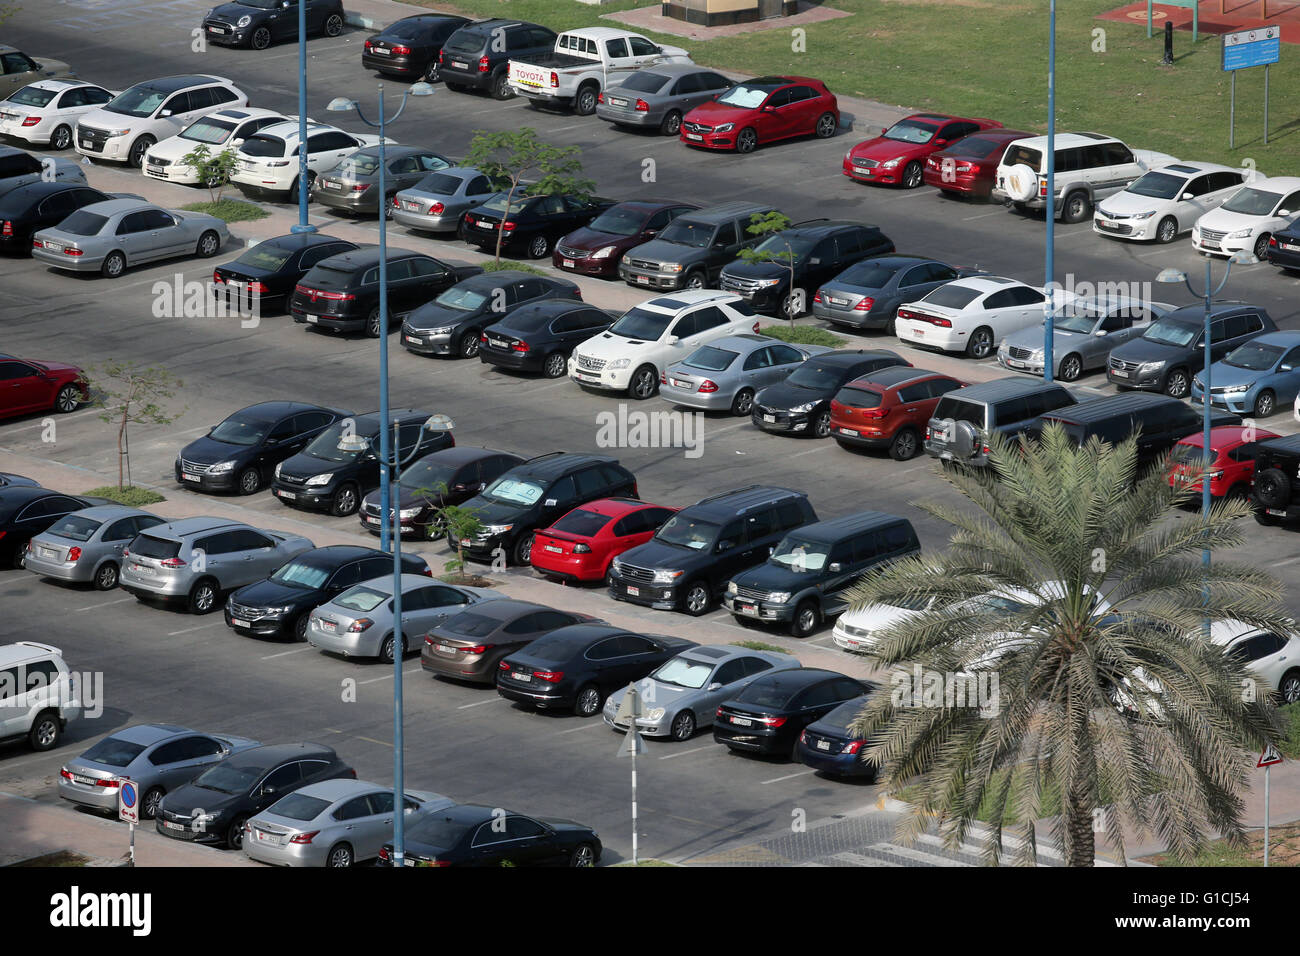 Aerial View of Parked Cars in Parking Lot.  United Arab Emirates. - Stock Image